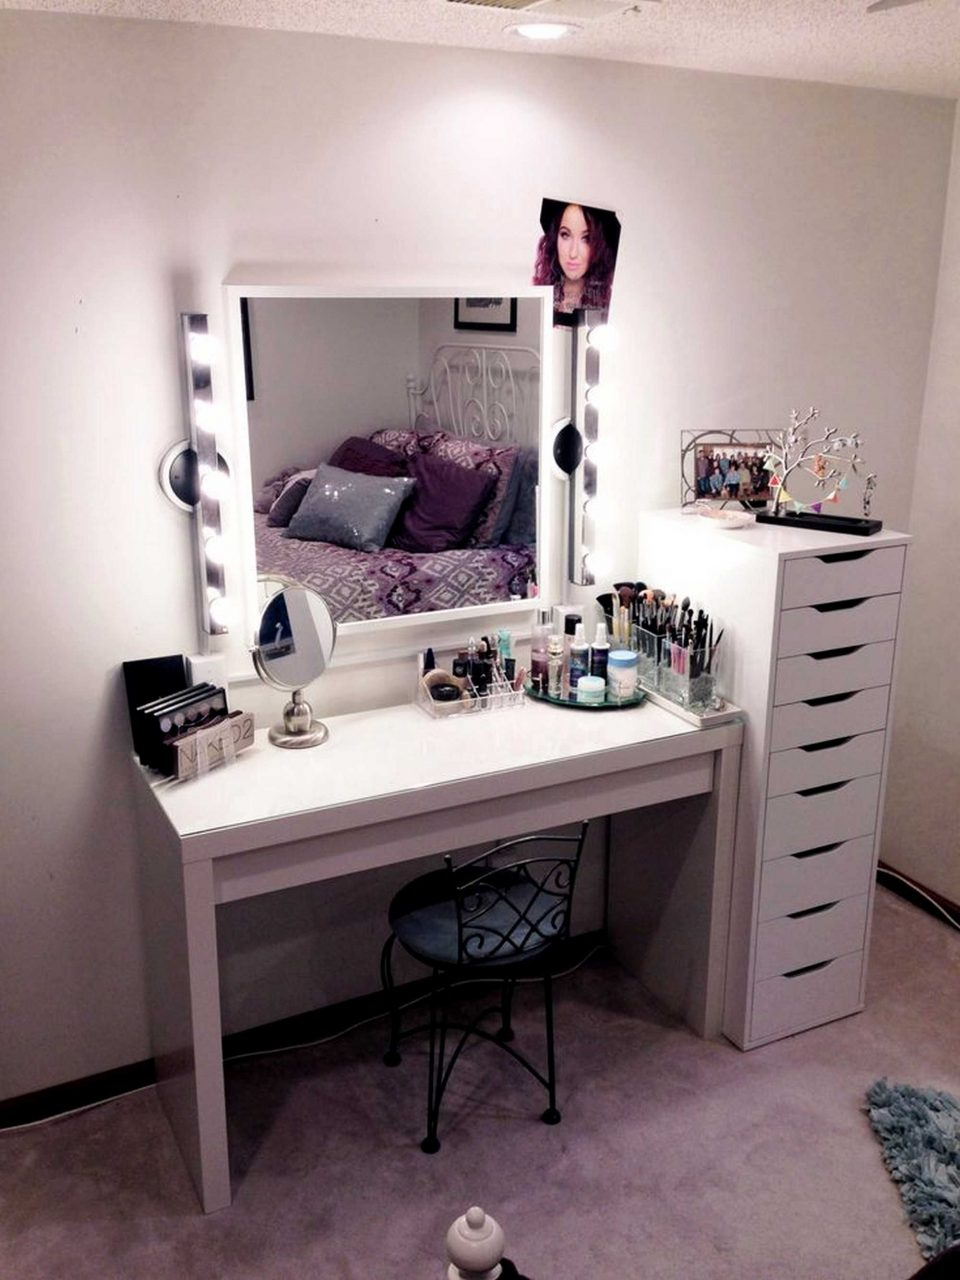 Guaranteed Bedroom Vanity With Drawers Set Lights Sets Mirror And